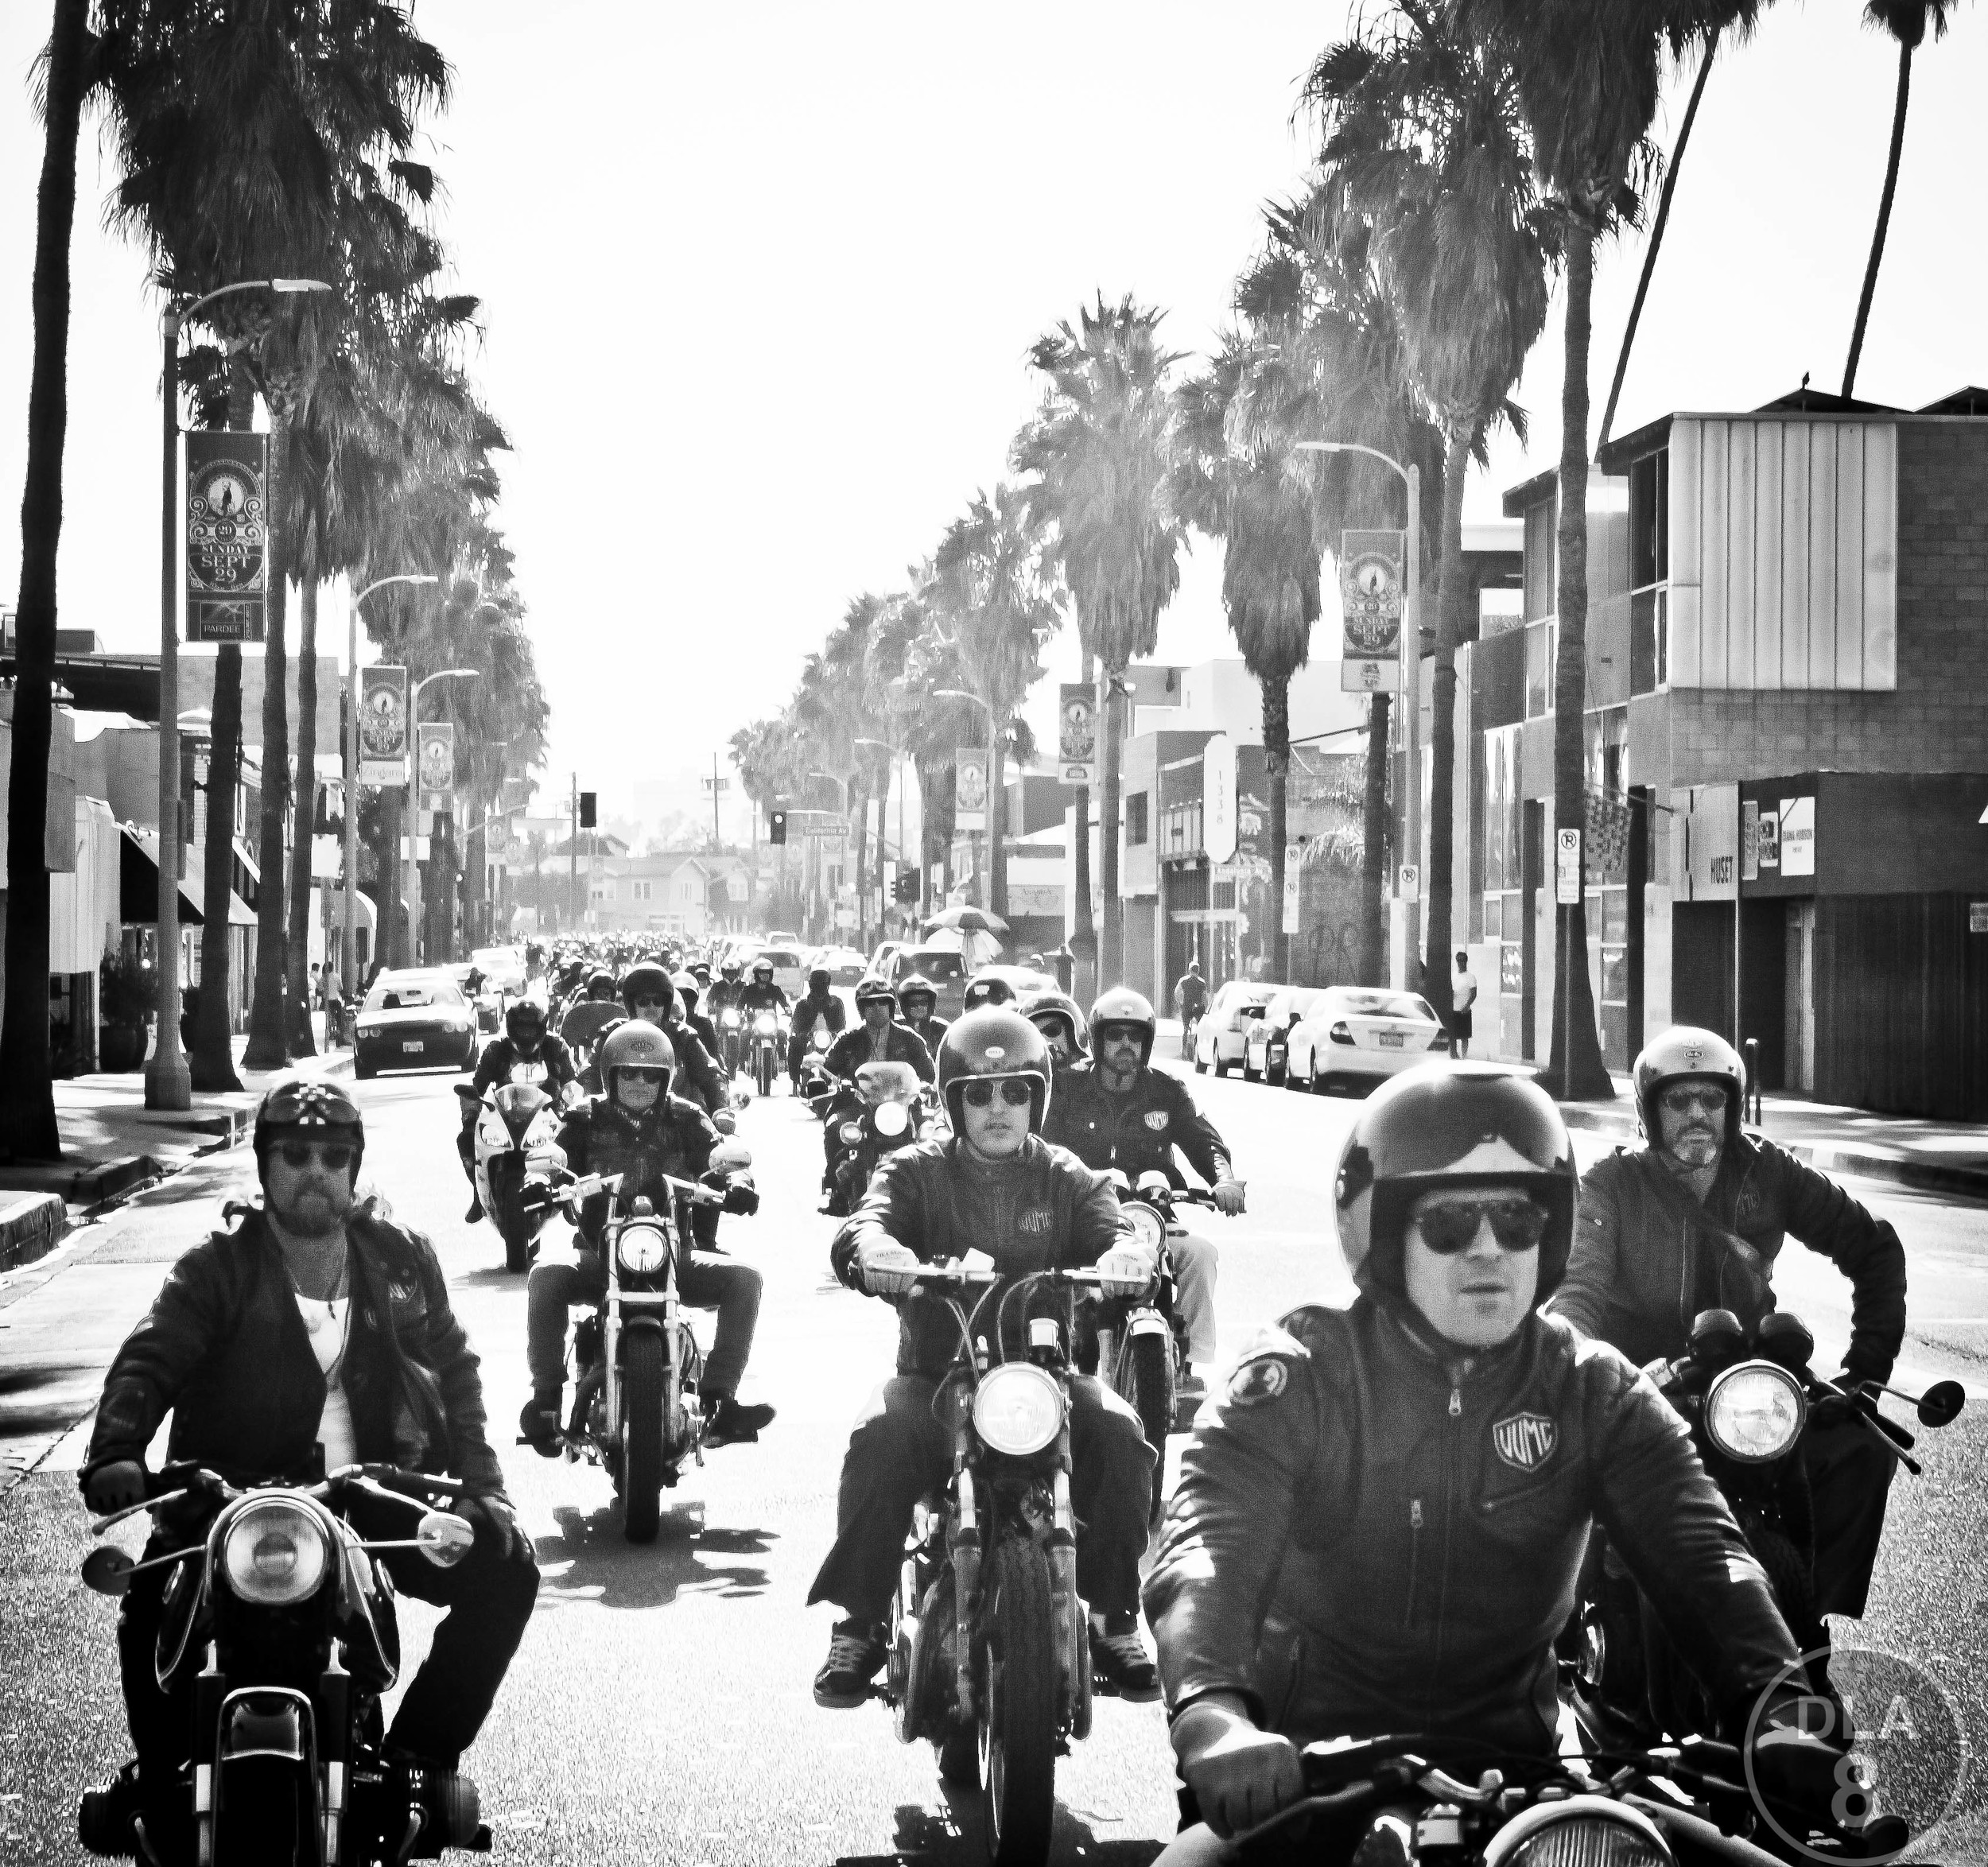 Venice Vintage Motorcycle Rally 2013. Photo Courtesy VVMC